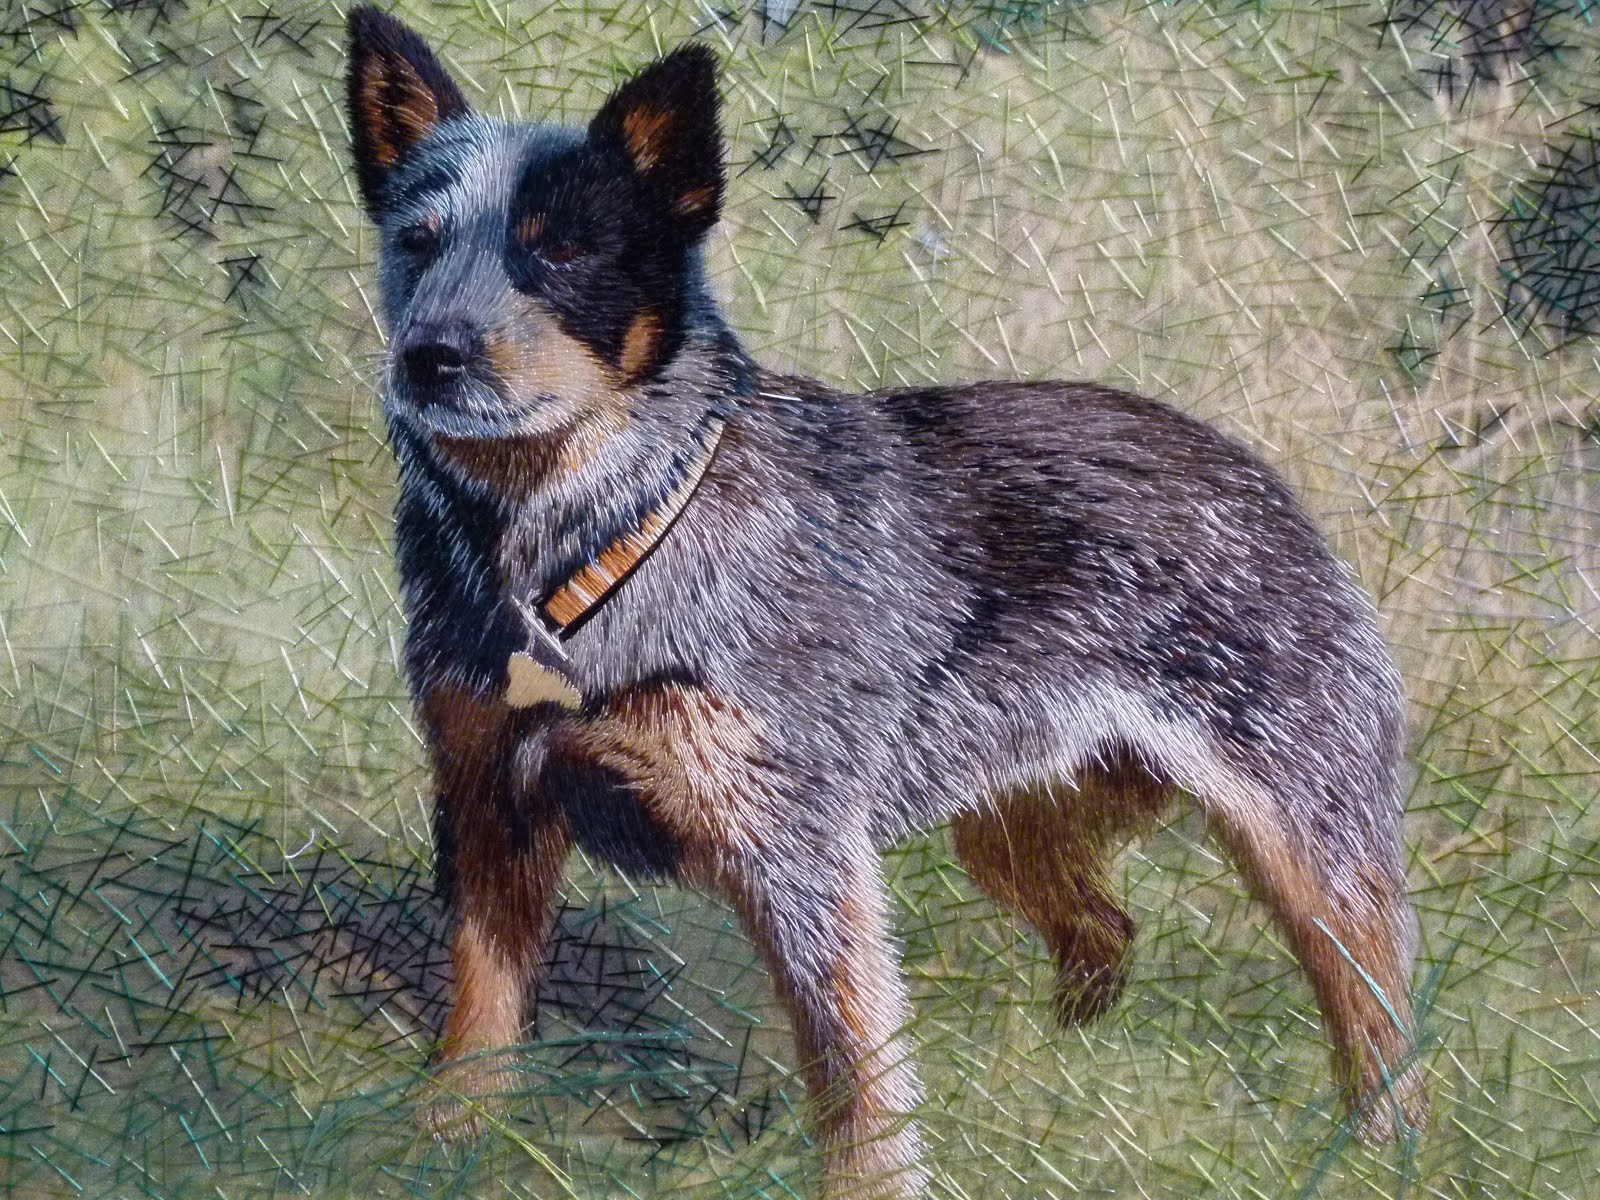 blue heeler Wallpaper and Background Image 1600x1200 ID453428 1600x1200